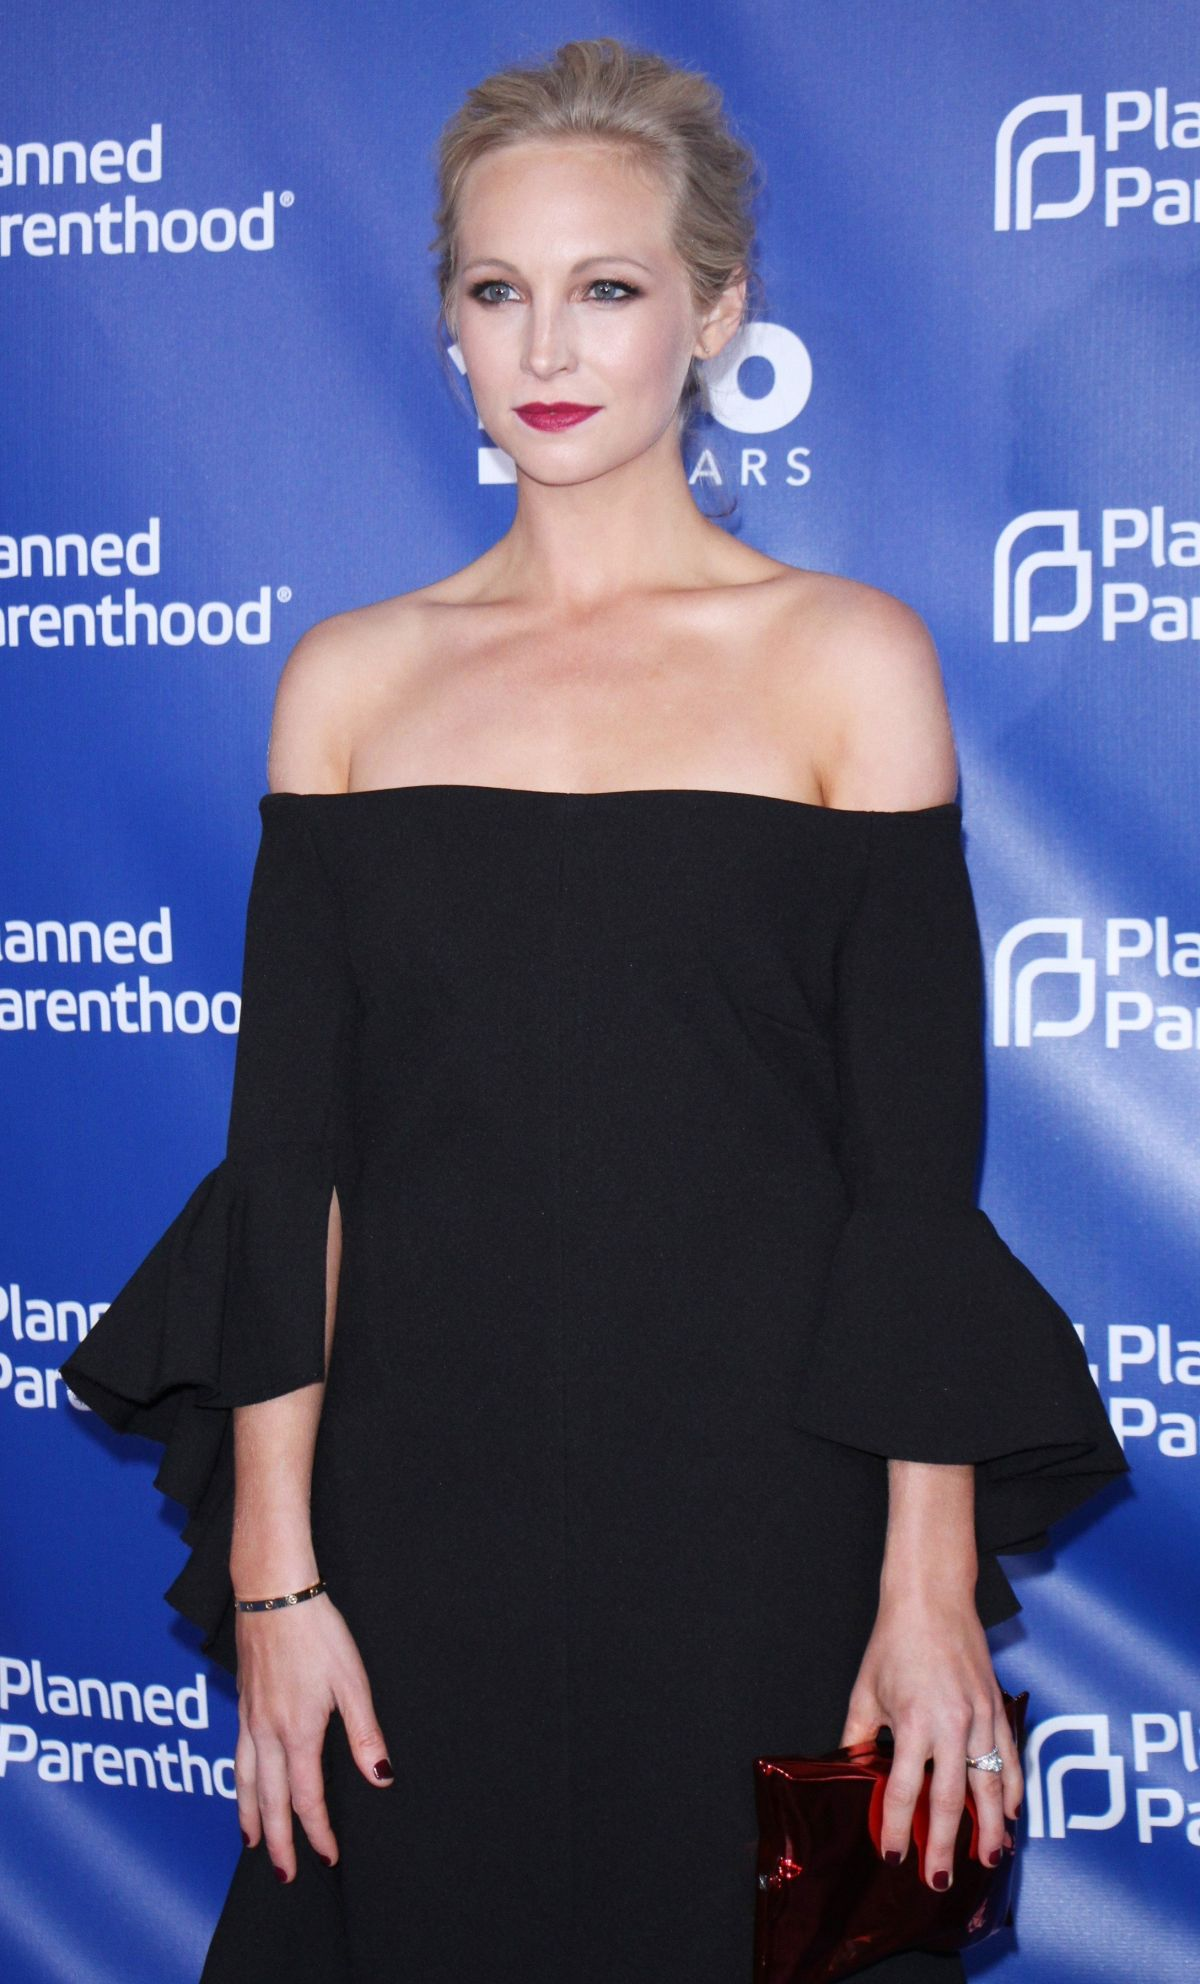 CANDICE ACCOLA at Planned Parenthood 100th Anniversary Gala 05/02/2017